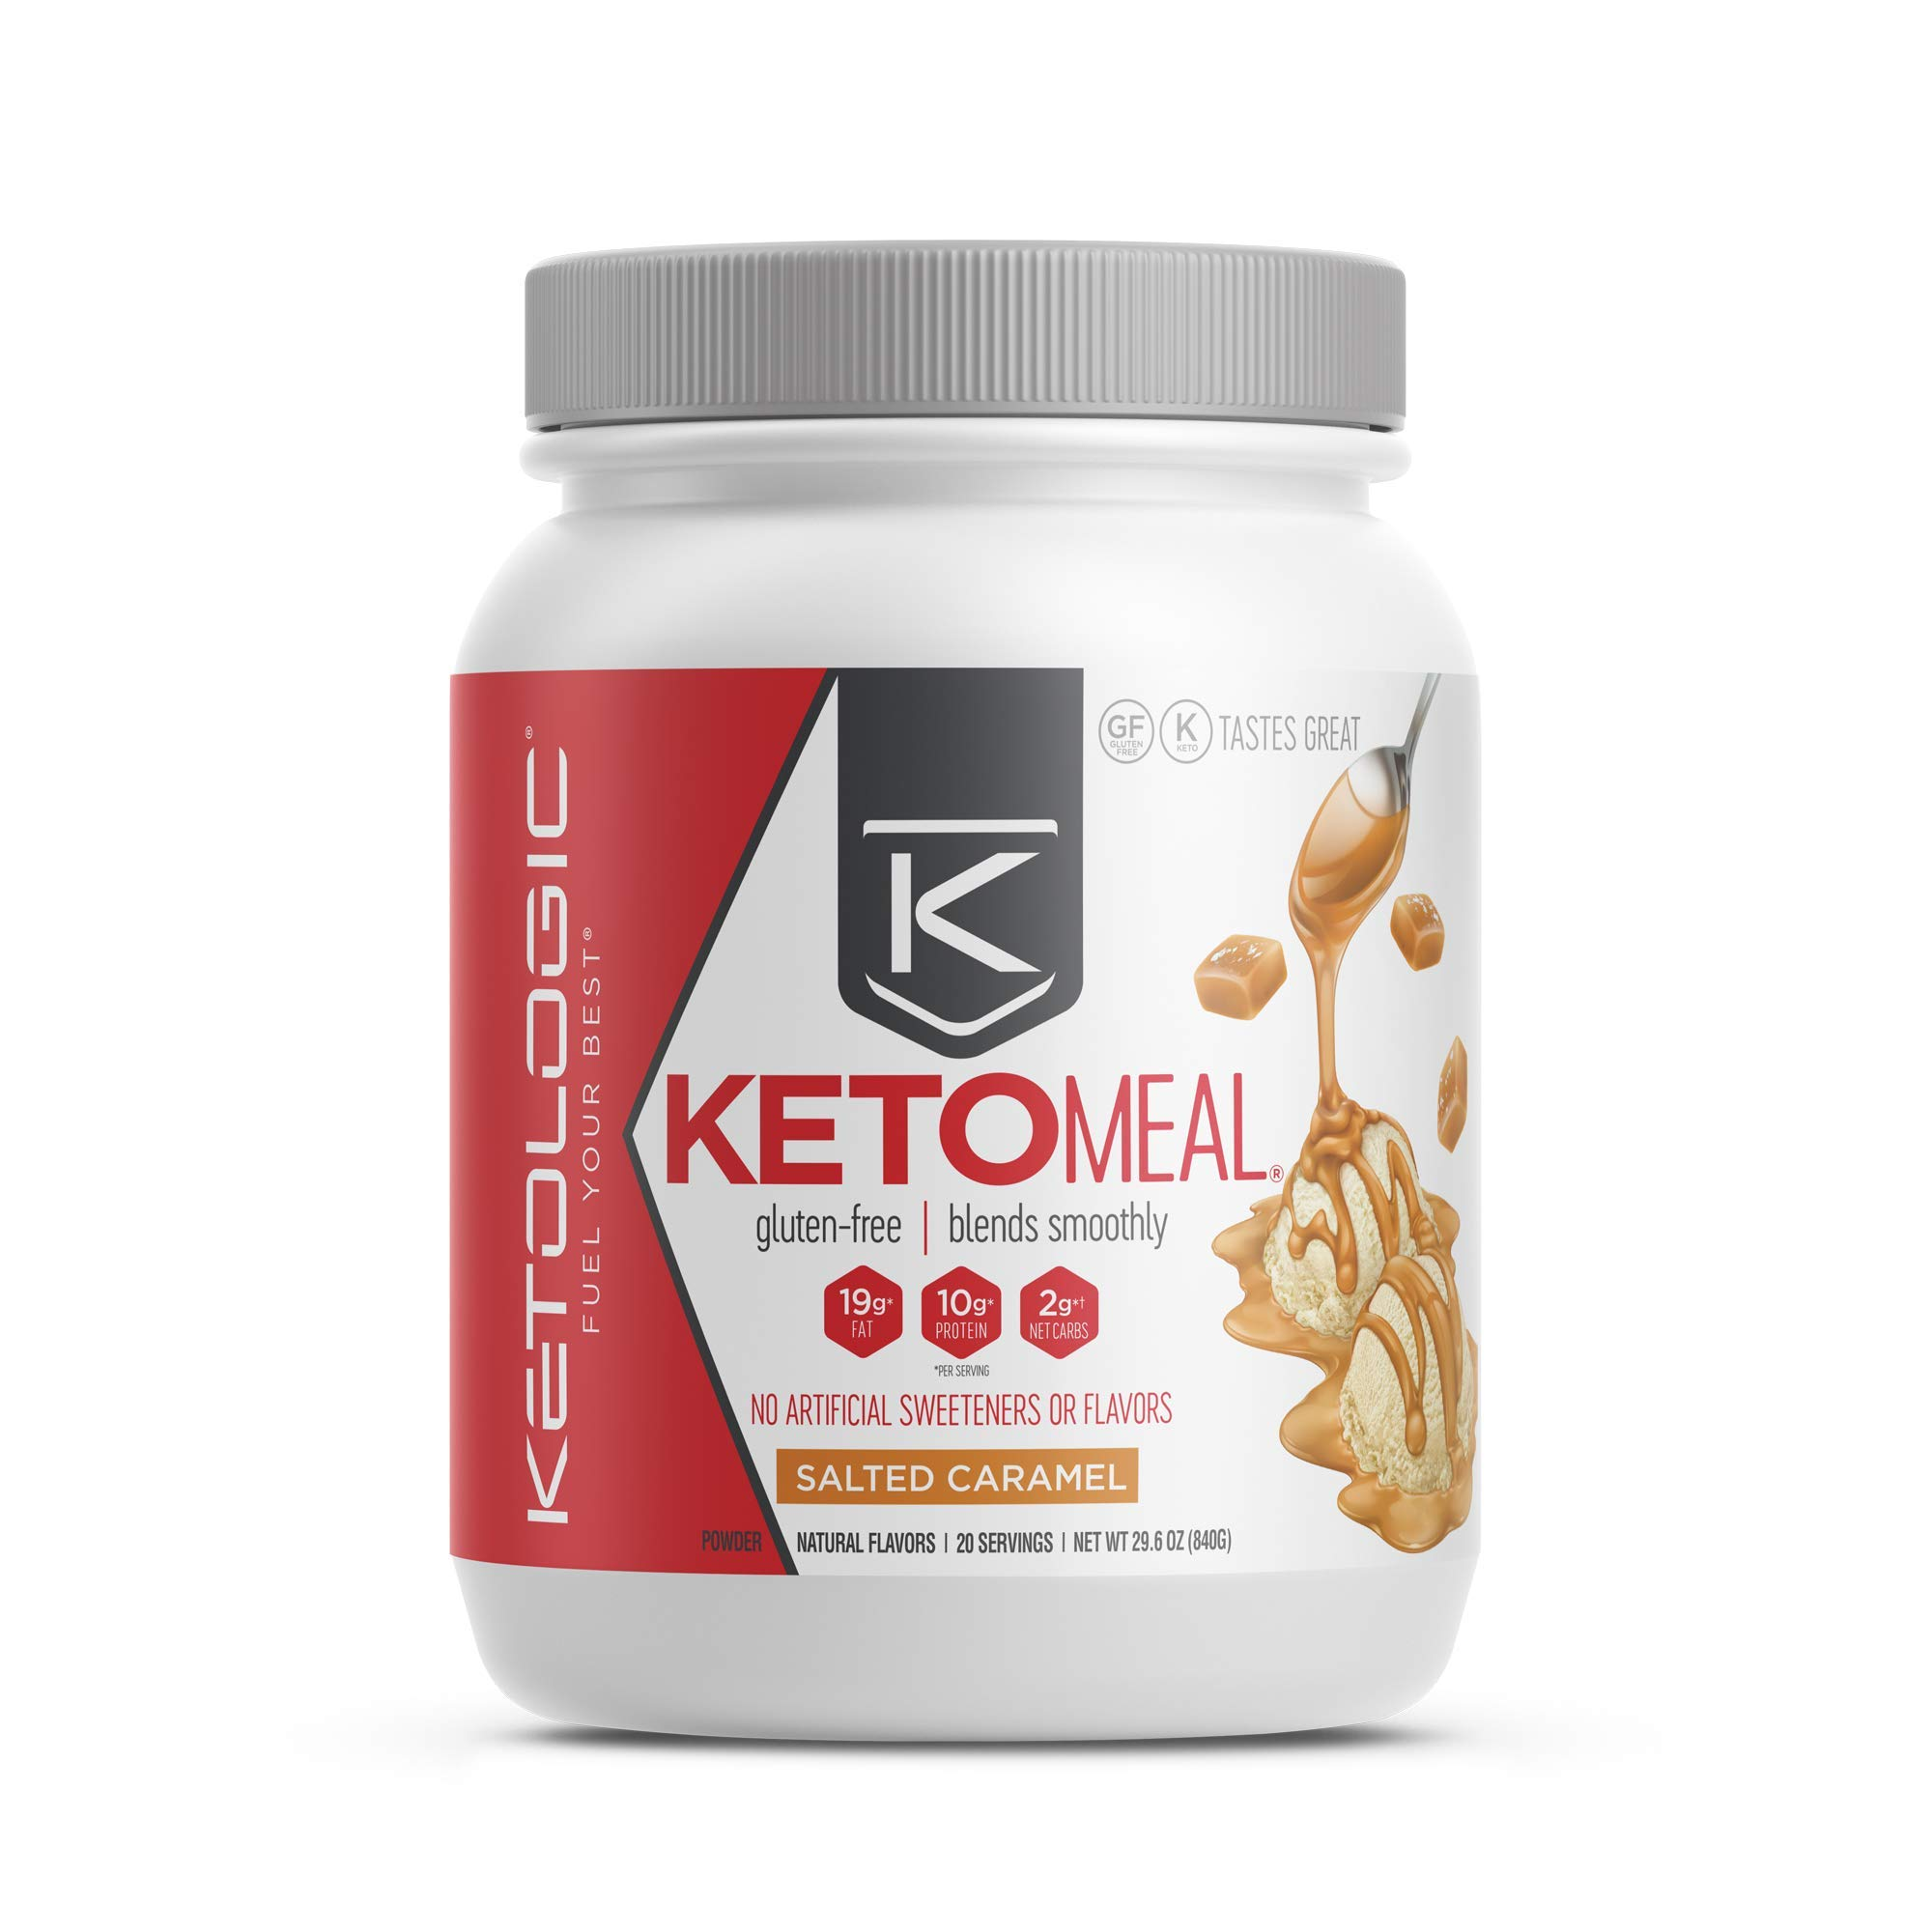 KetoLogic Keto Meal Replacement with MCT, Salted Caramel   Low Carb, High Fat Keto Powder   Promotes Weight Loss & Suppresses Appetite   20 Servings